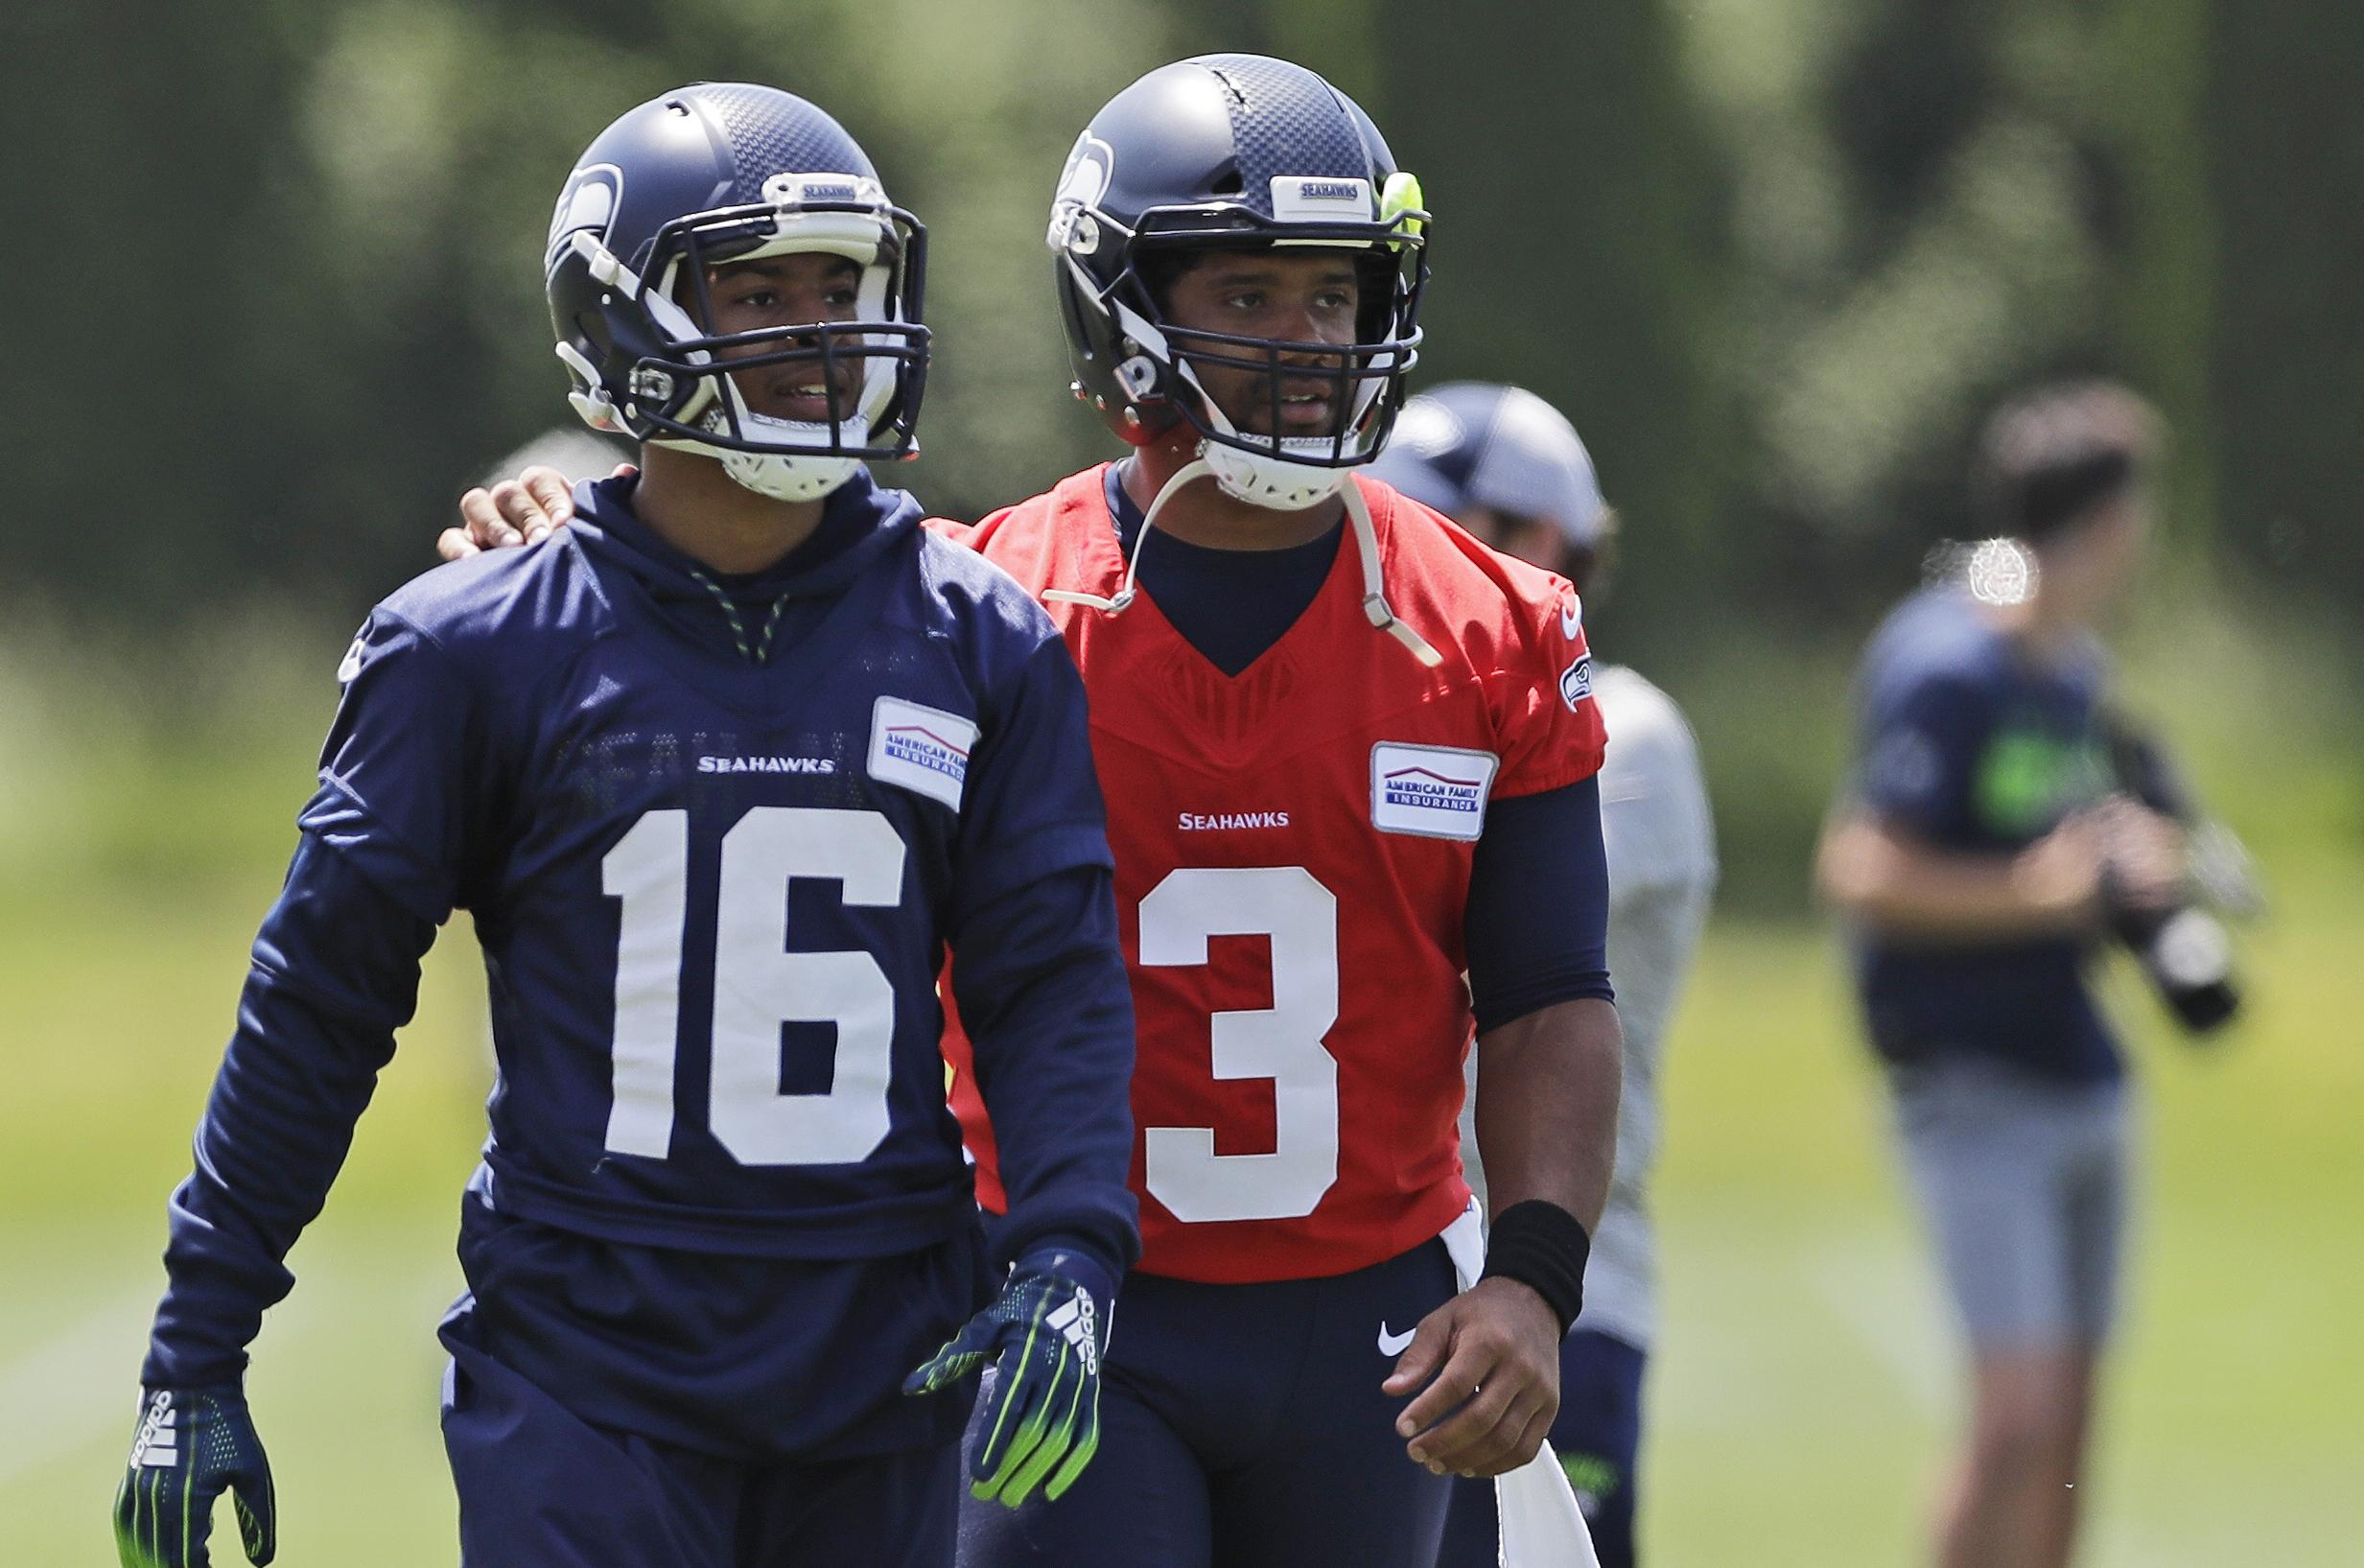 promo code 723ec 055f6 Russell Wilson and then who? Ranking the top 10 players on ...